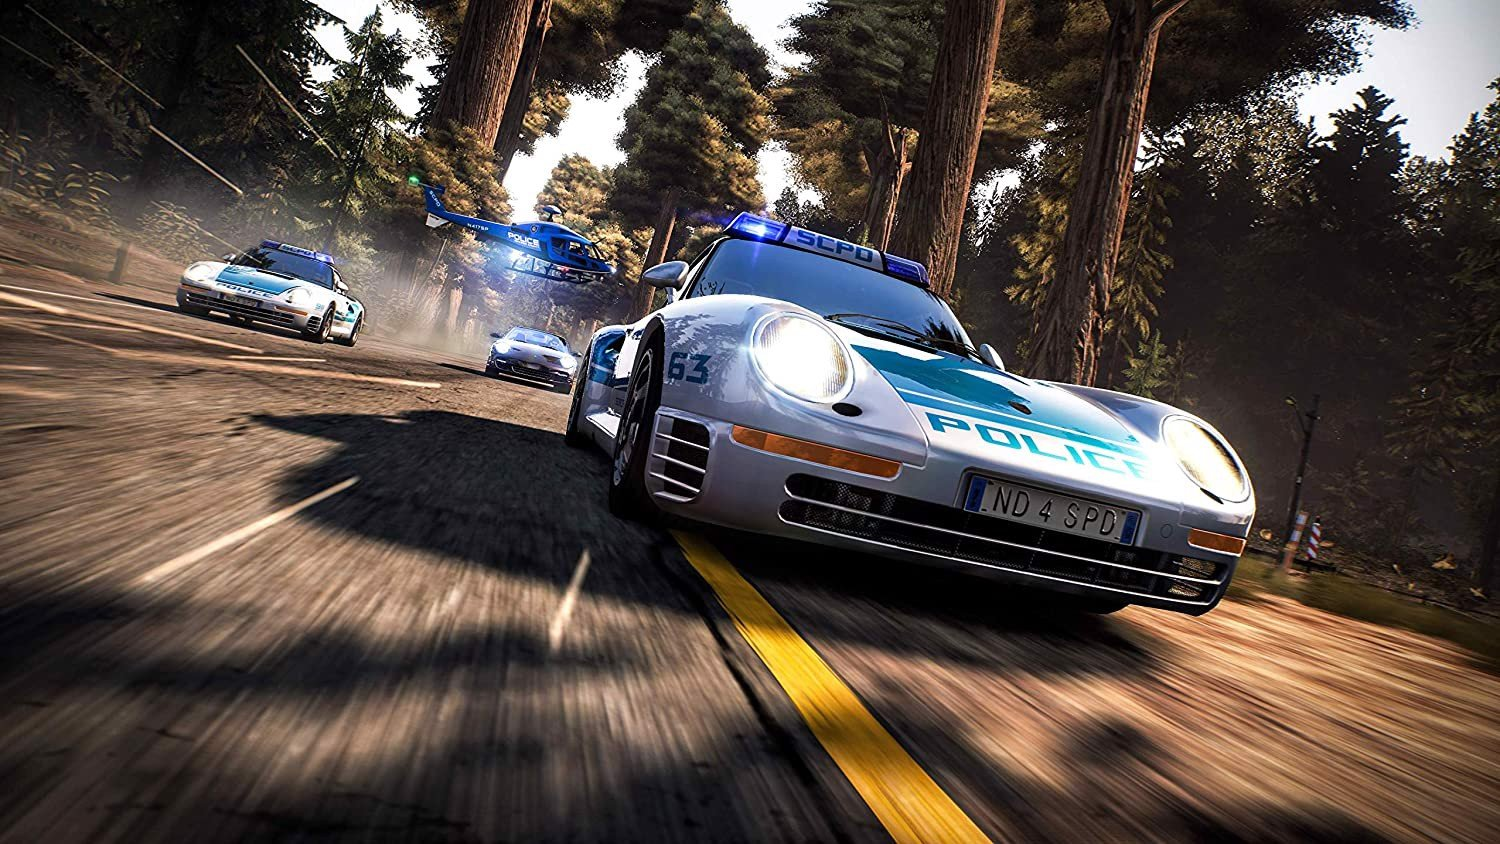 840 - Need for Speed: Hot Pursuit Remastered